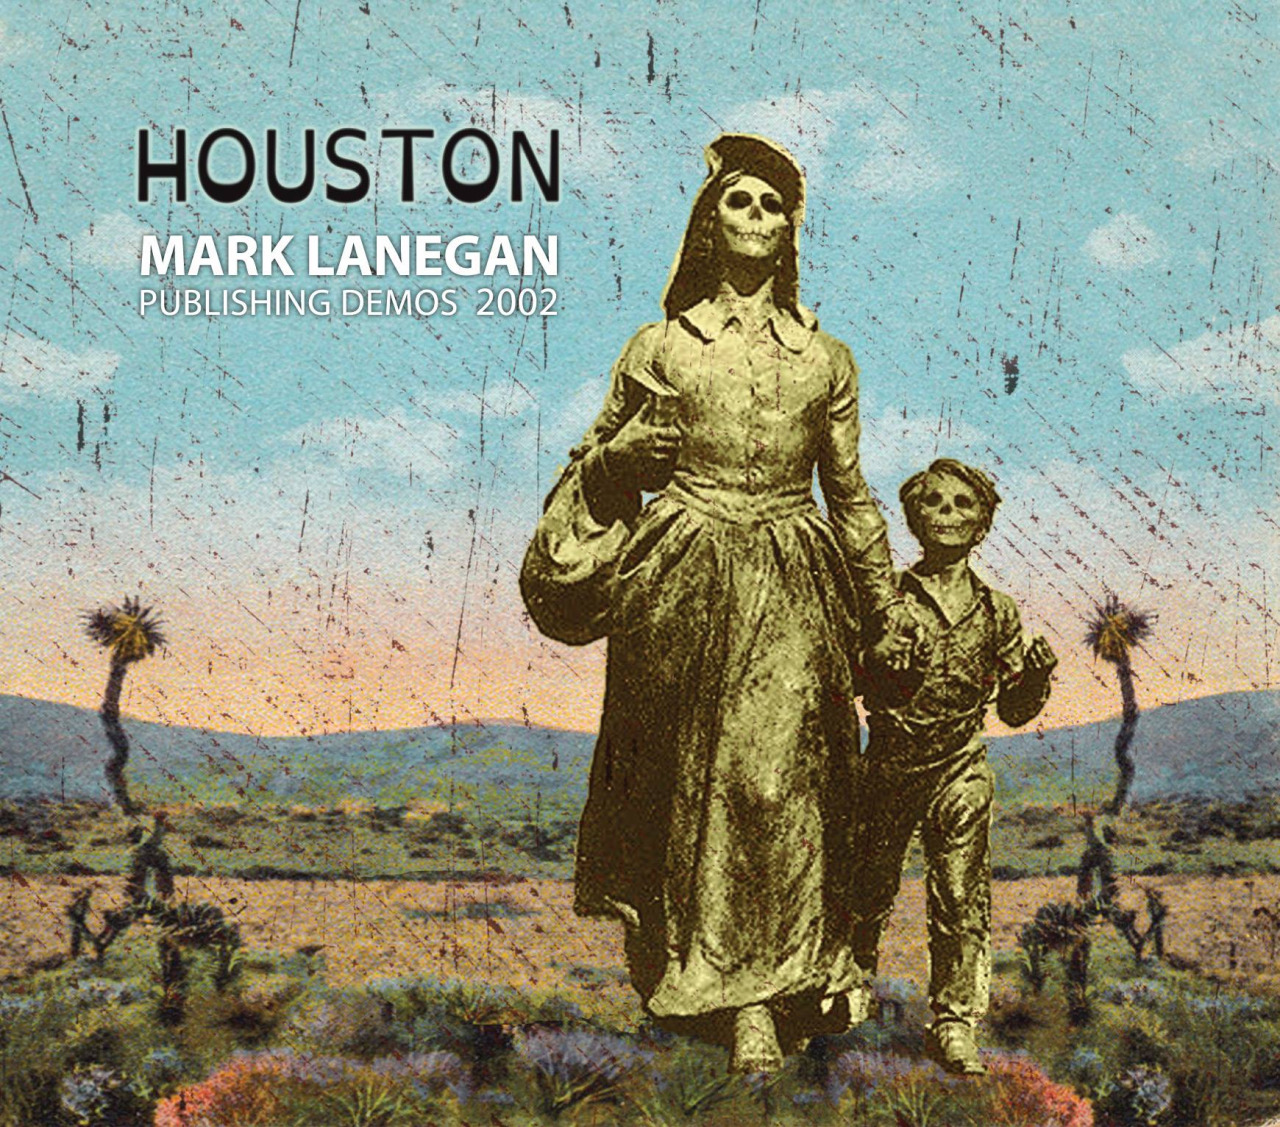 Mark Lanegan - Houston